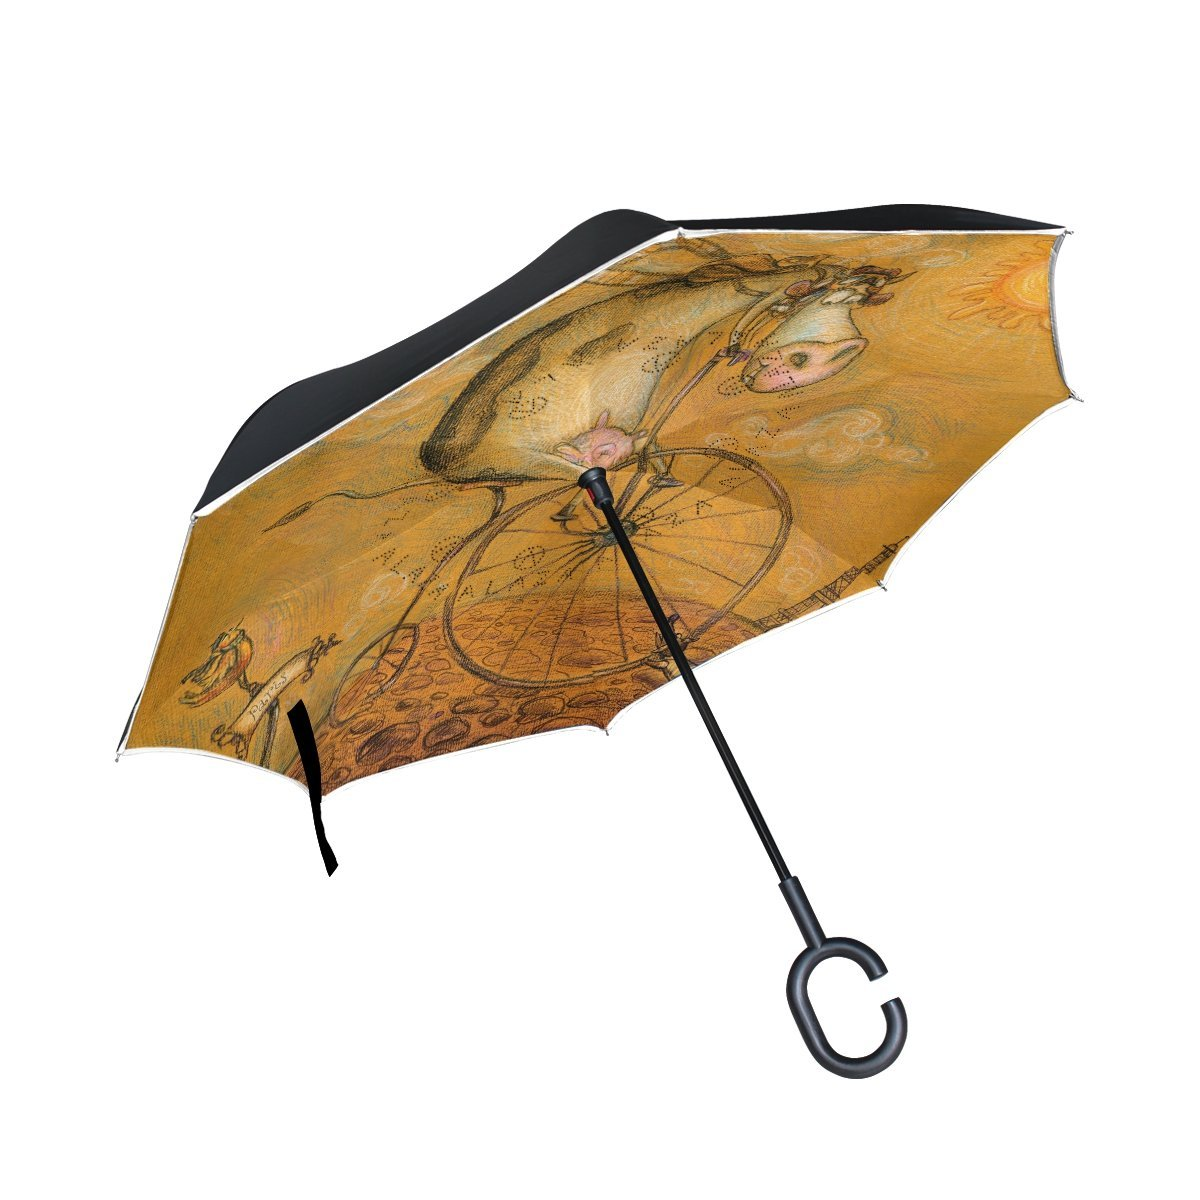 LAVOVO Vintage Cute Cow On The Bicycle Pattern Inverted Double Layer Straight Umbrellas Inside-Out Reversible Umbrella with C-Shaped Handle for Rain Sun Car Use